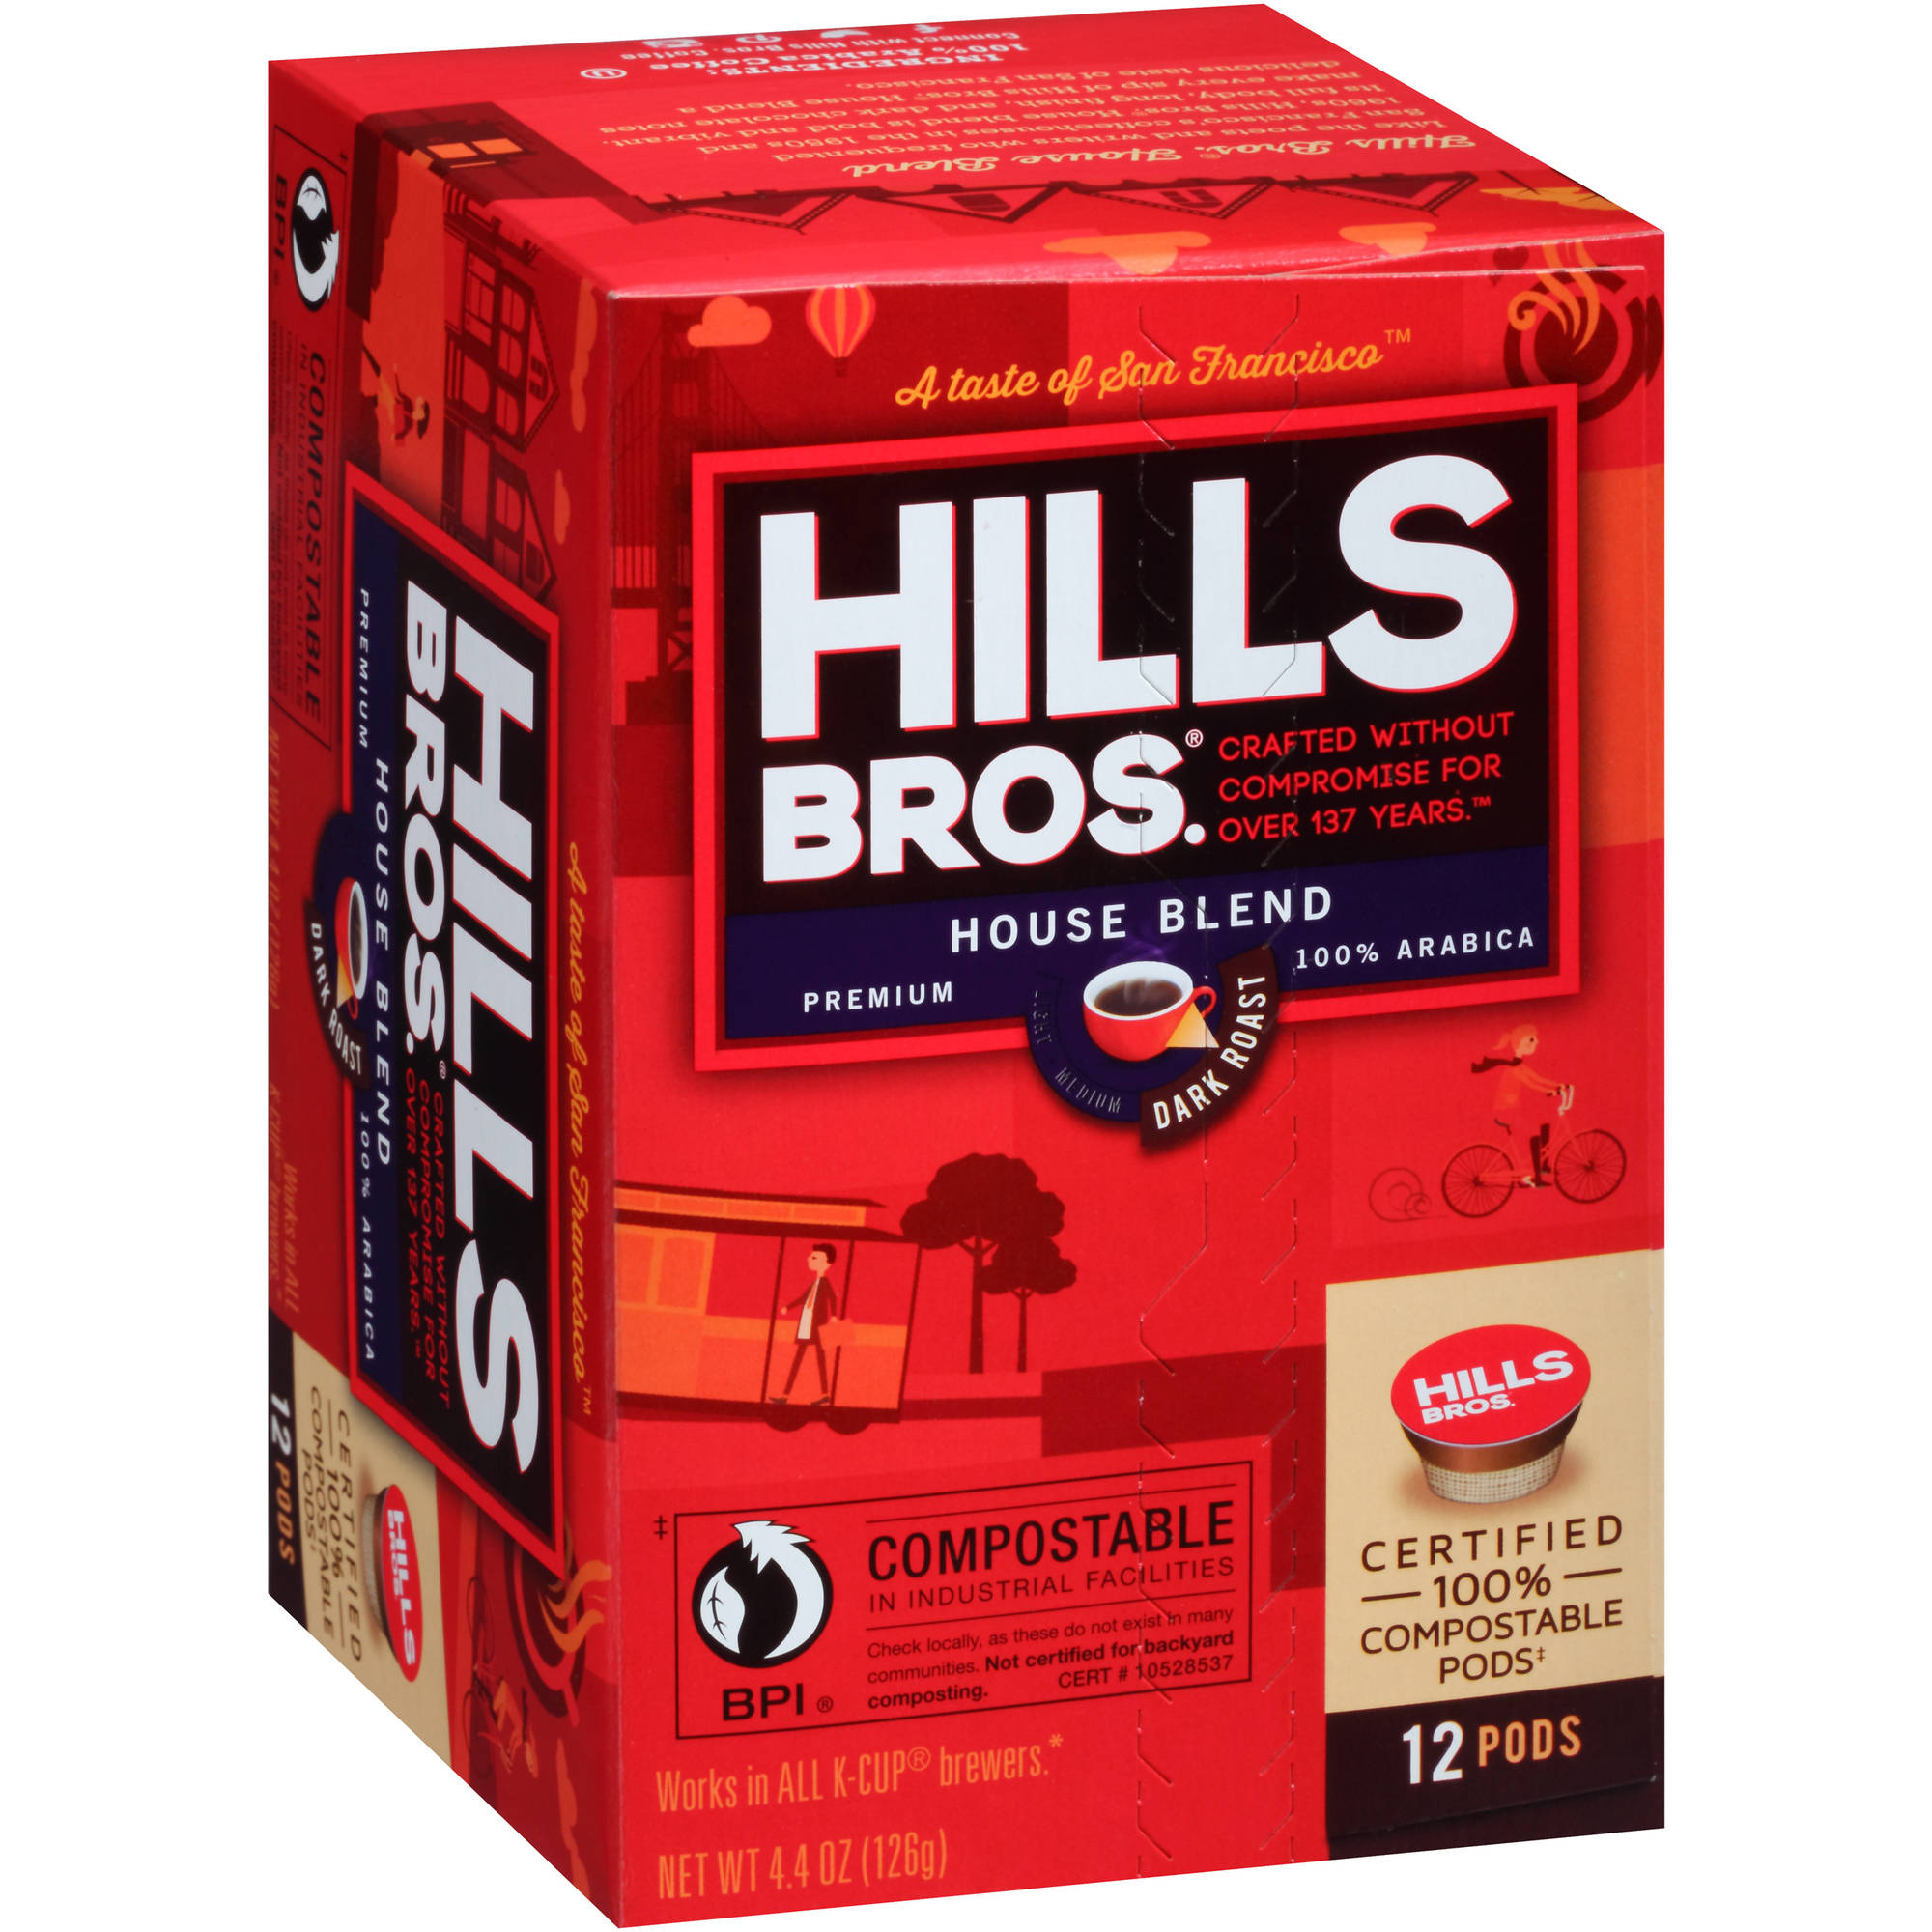 Hills Bros. House Blend Dark Roast Coffee Single Serve Cups, 12 count, 4.4 oz